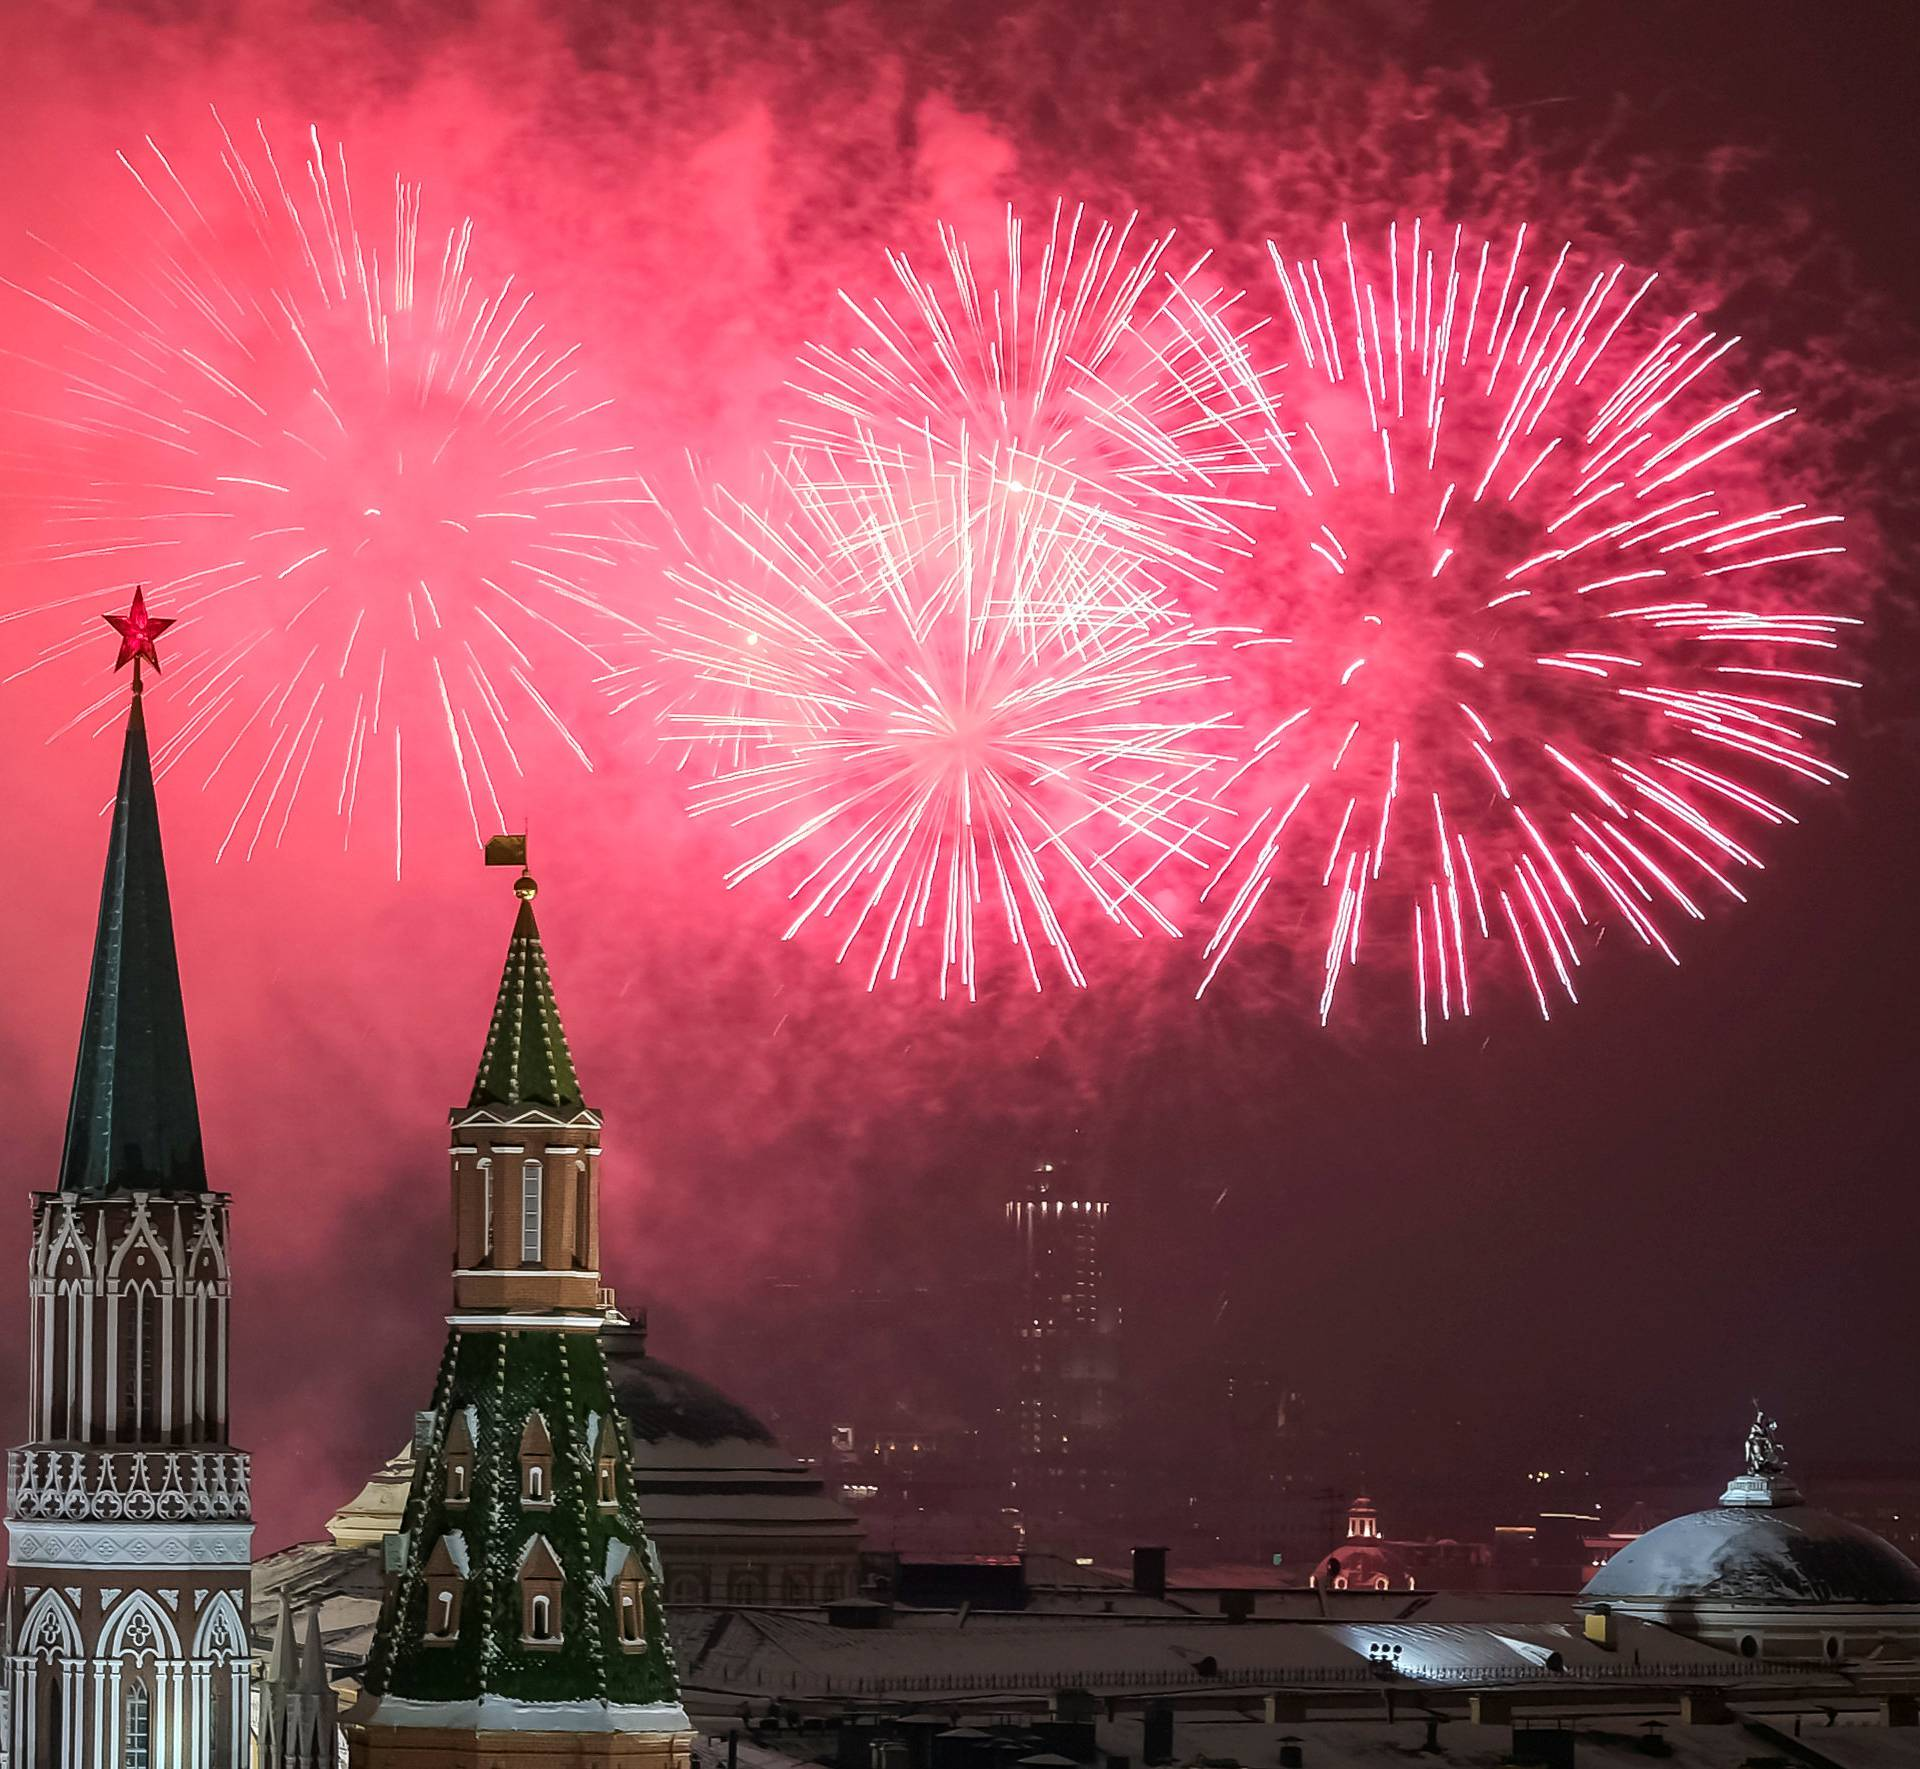 Fireworks explode in the sky over the Kremlin during New Year celebrations in Moscow